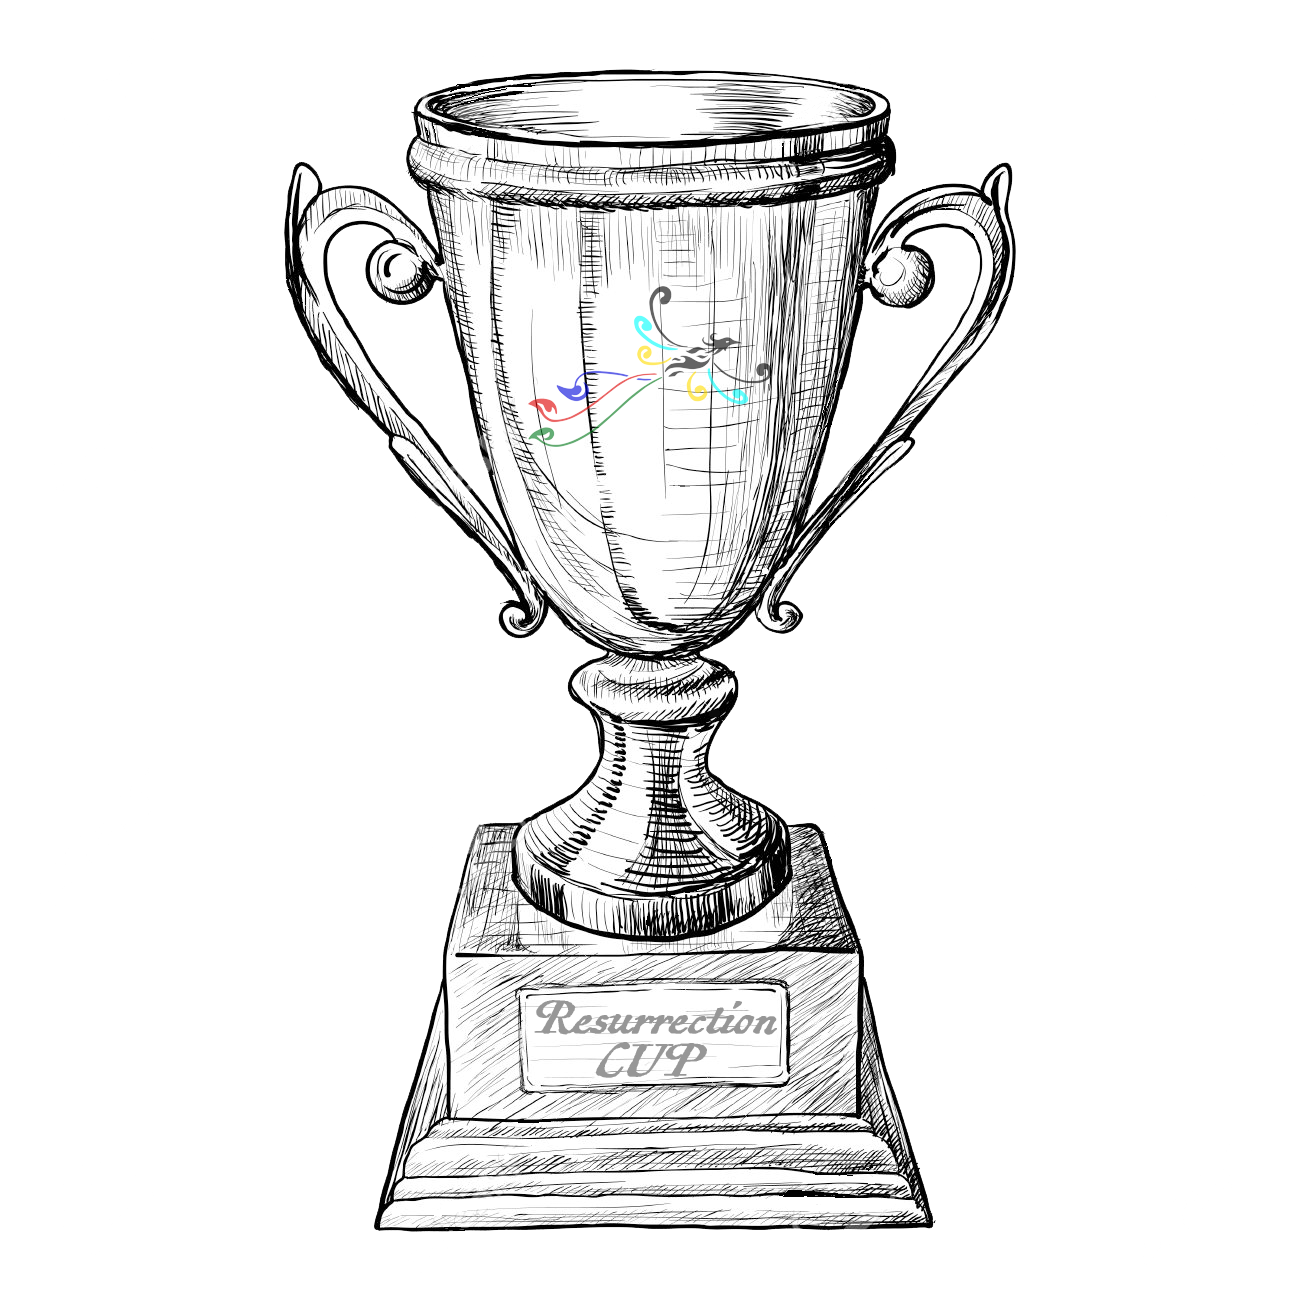 Medal drawing sketch. The resurrection cup penobscot